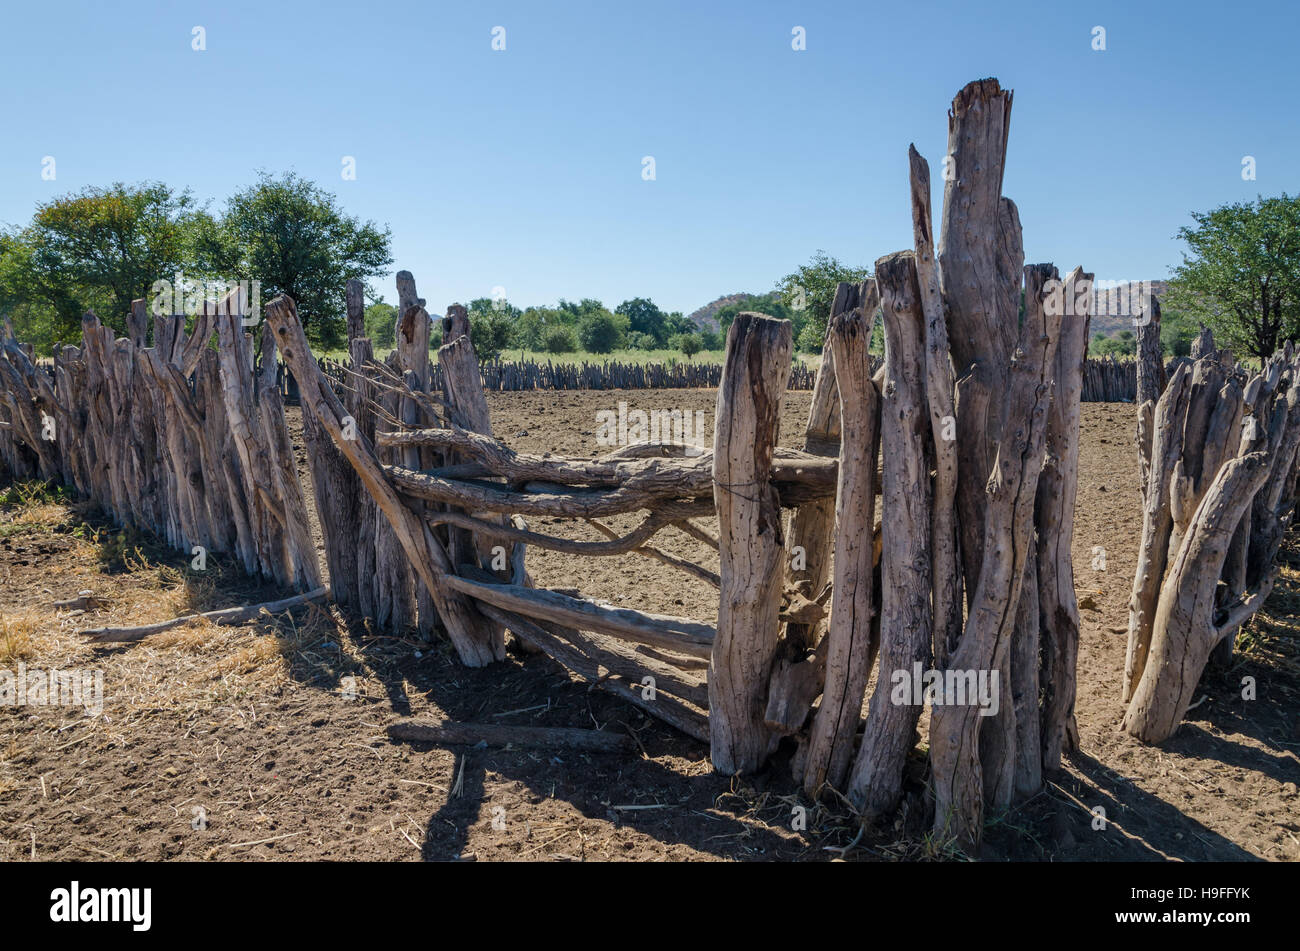 Traditional wooden kraal or enclosure for cattles of Himba tribe people Stock Photo